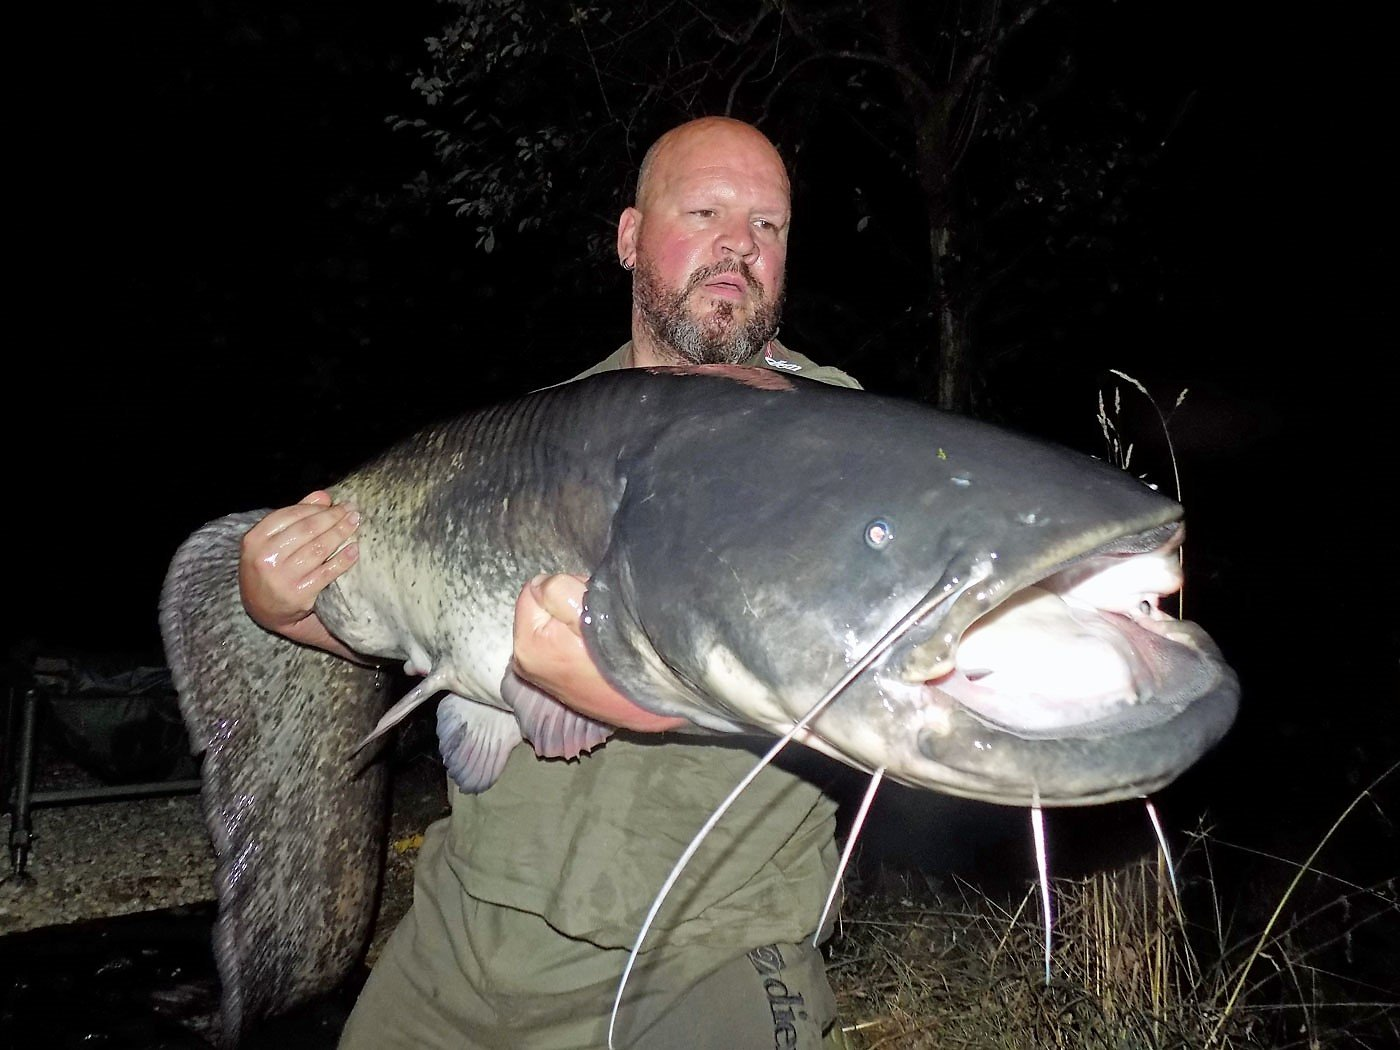 Vinnie with an 80lb catfish